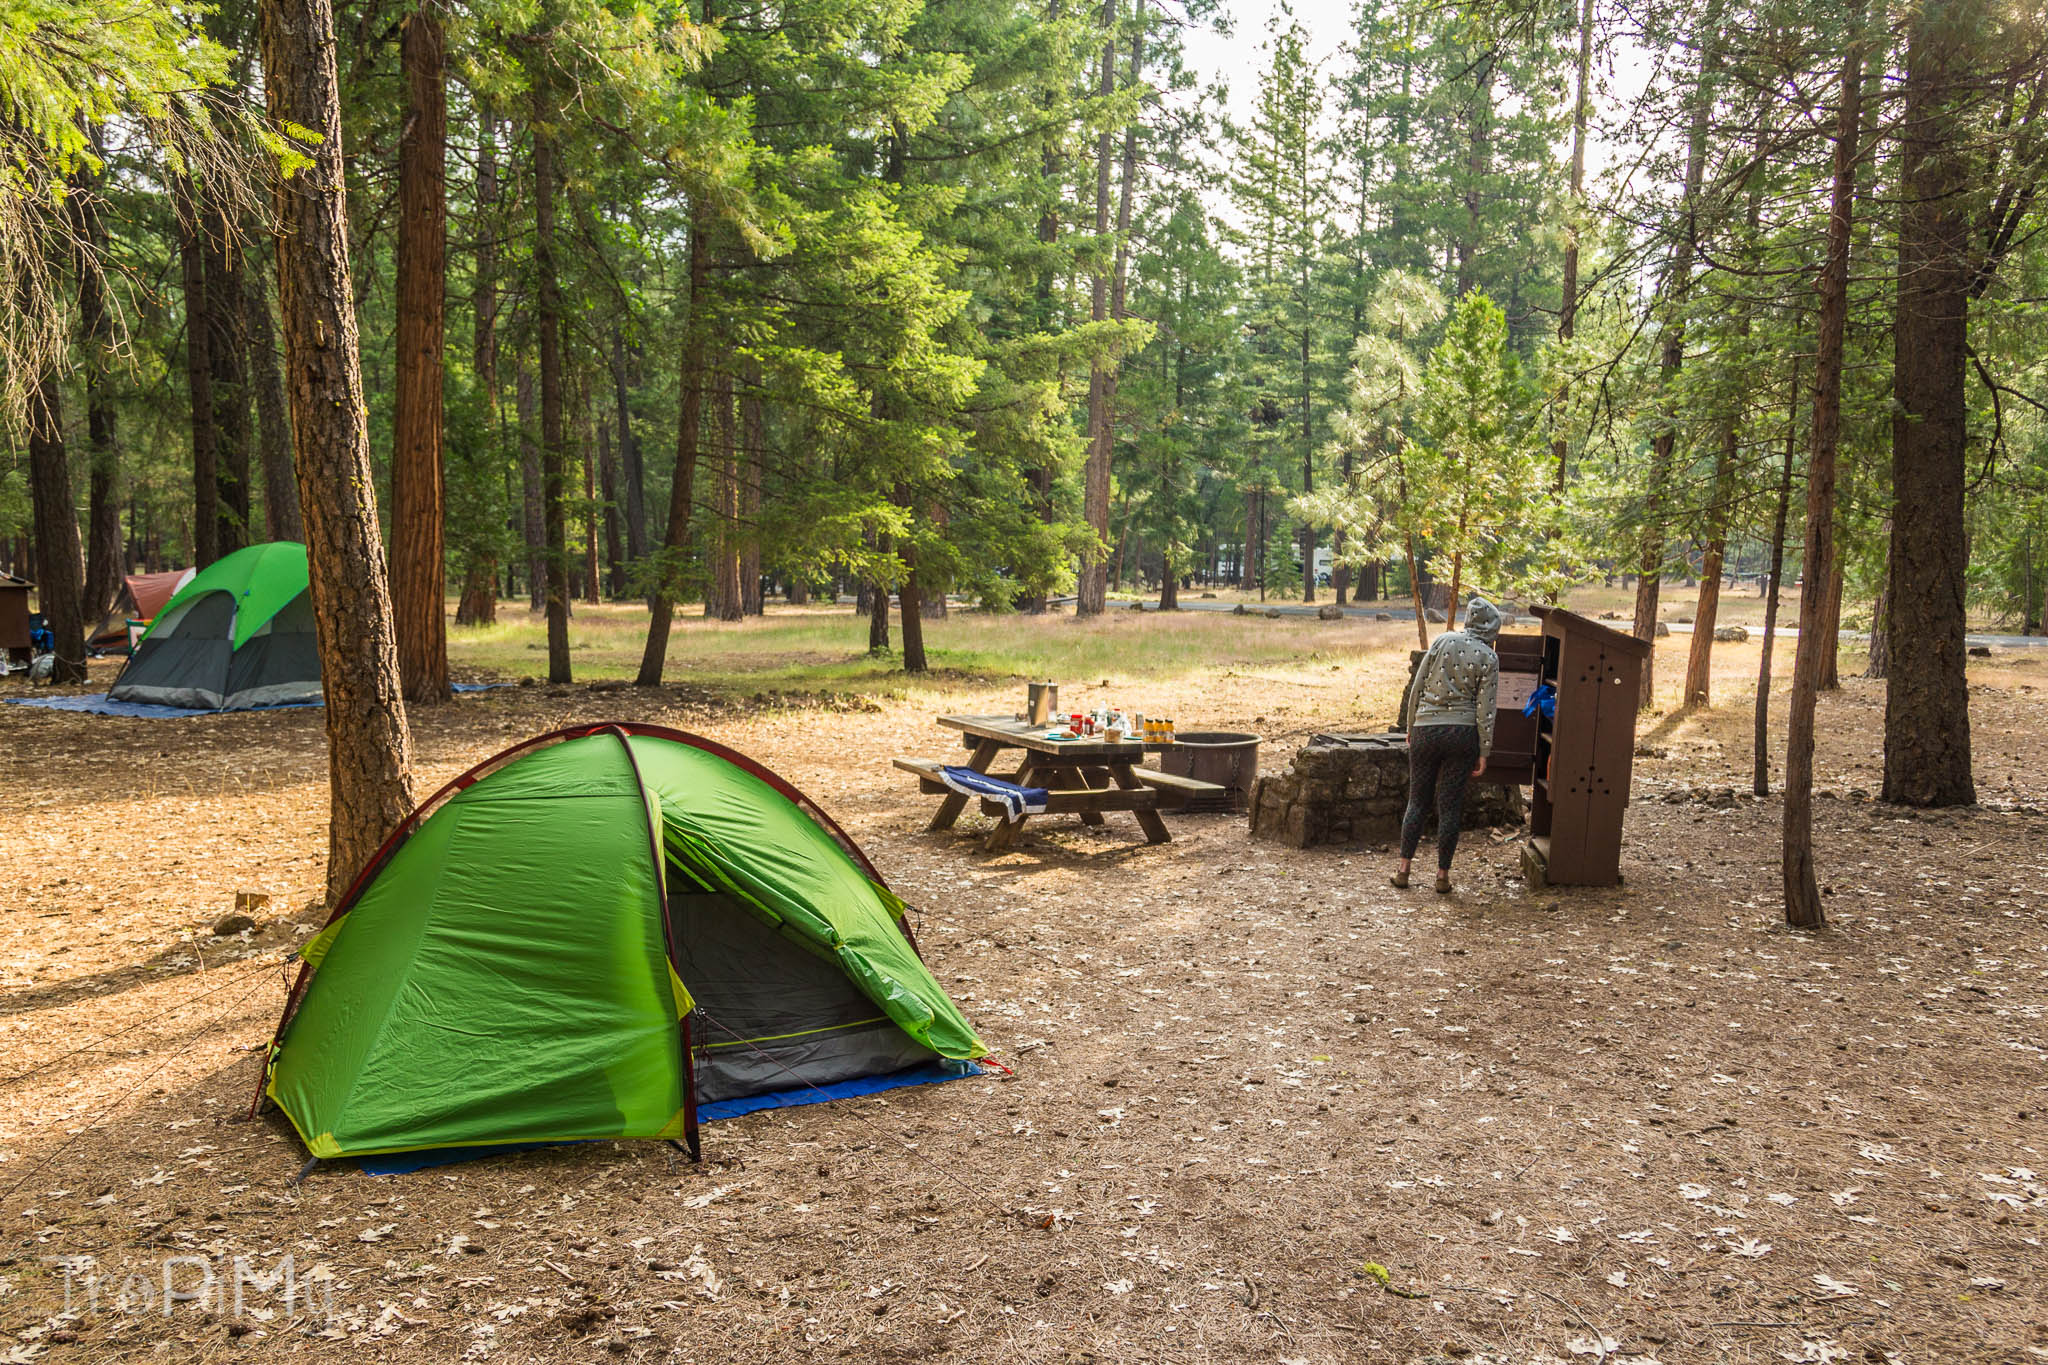 McArthur-Burney Falls campground